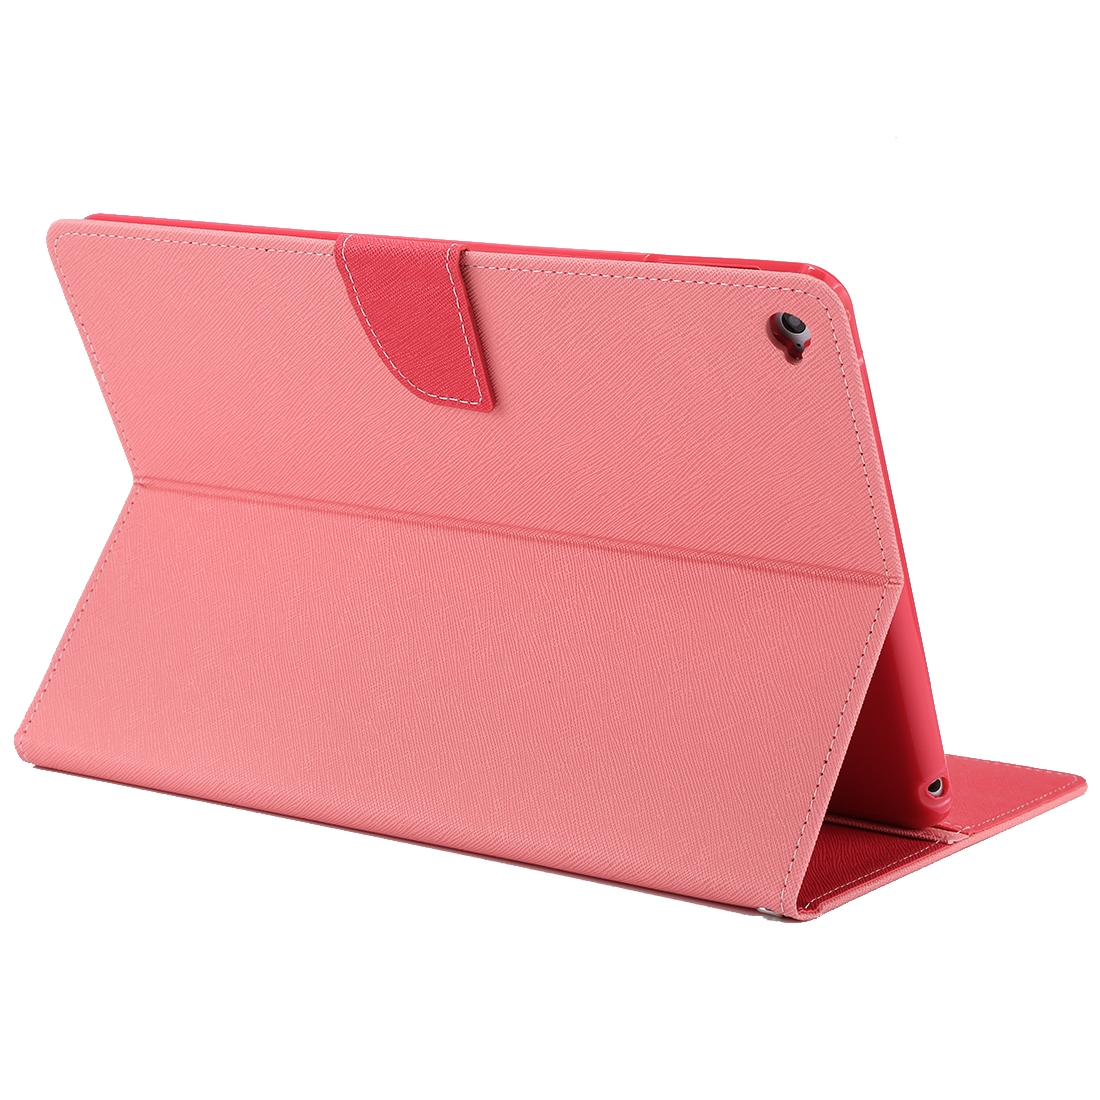 iPad Air 2 Case Cross Texture Leather Case with Holder & Slim Profile (Pink)